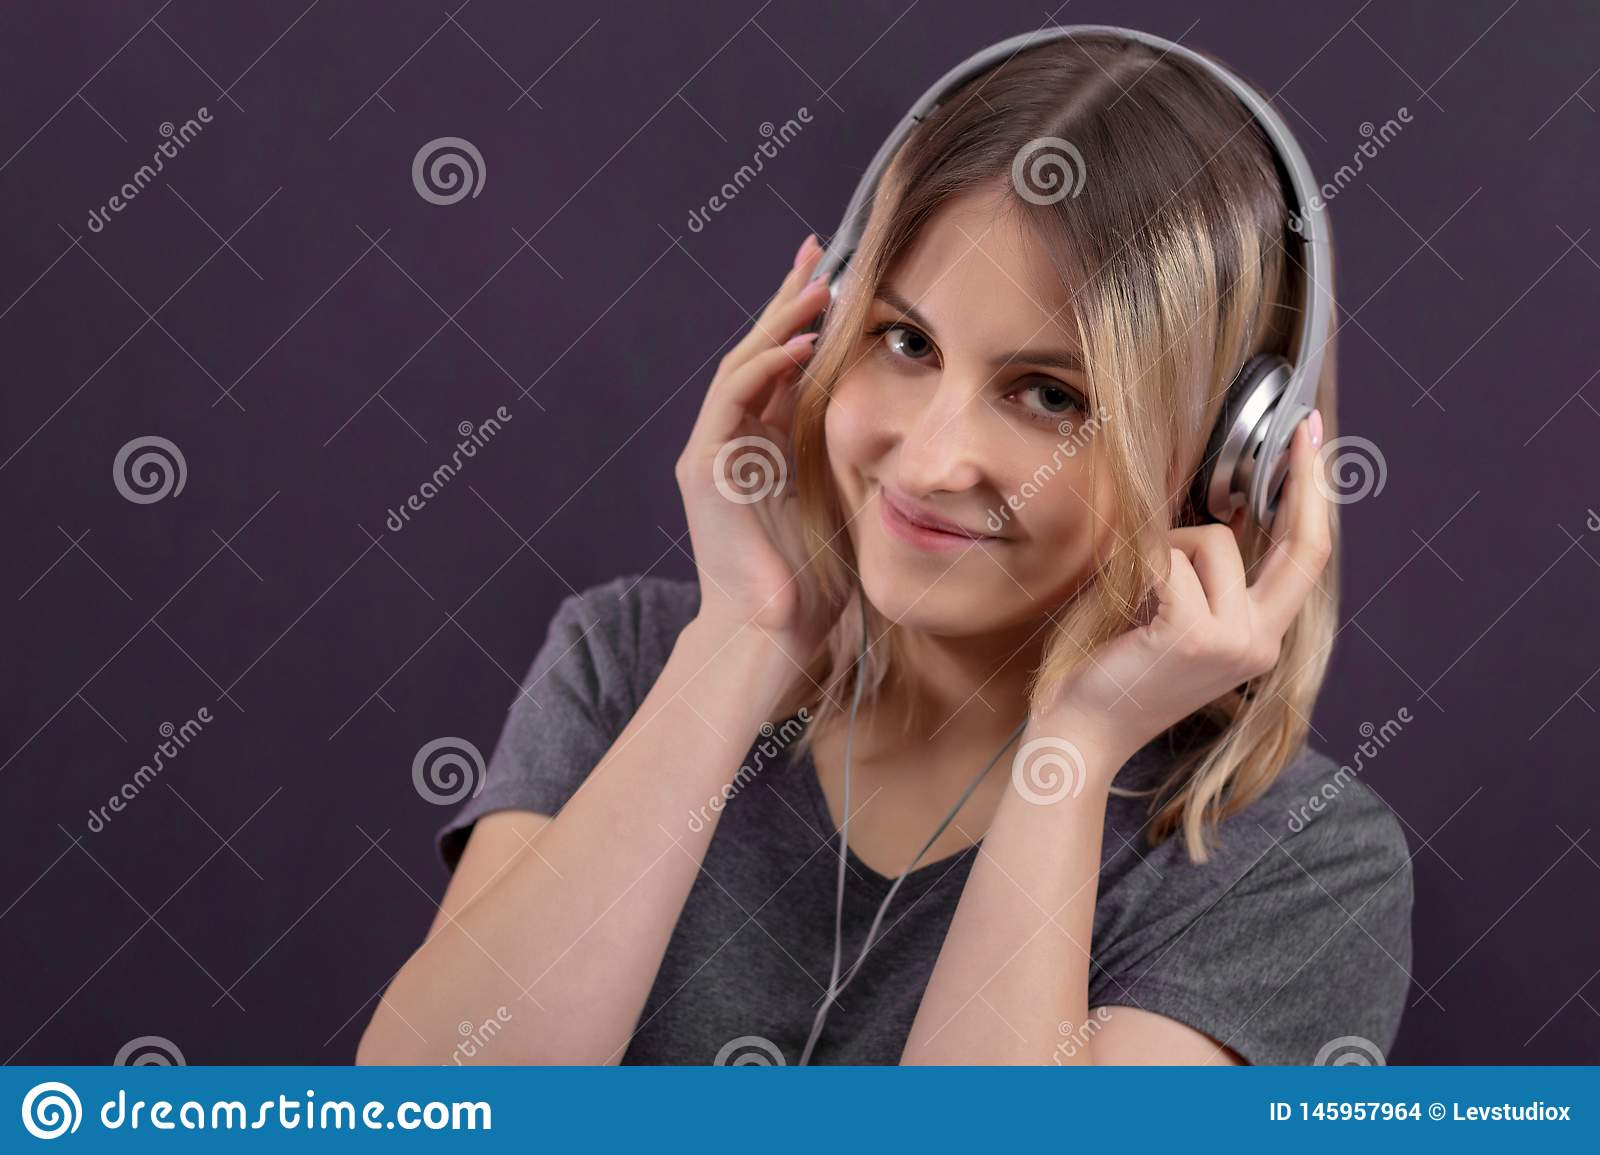 Girl in headphones smiling and listening to music, generation z